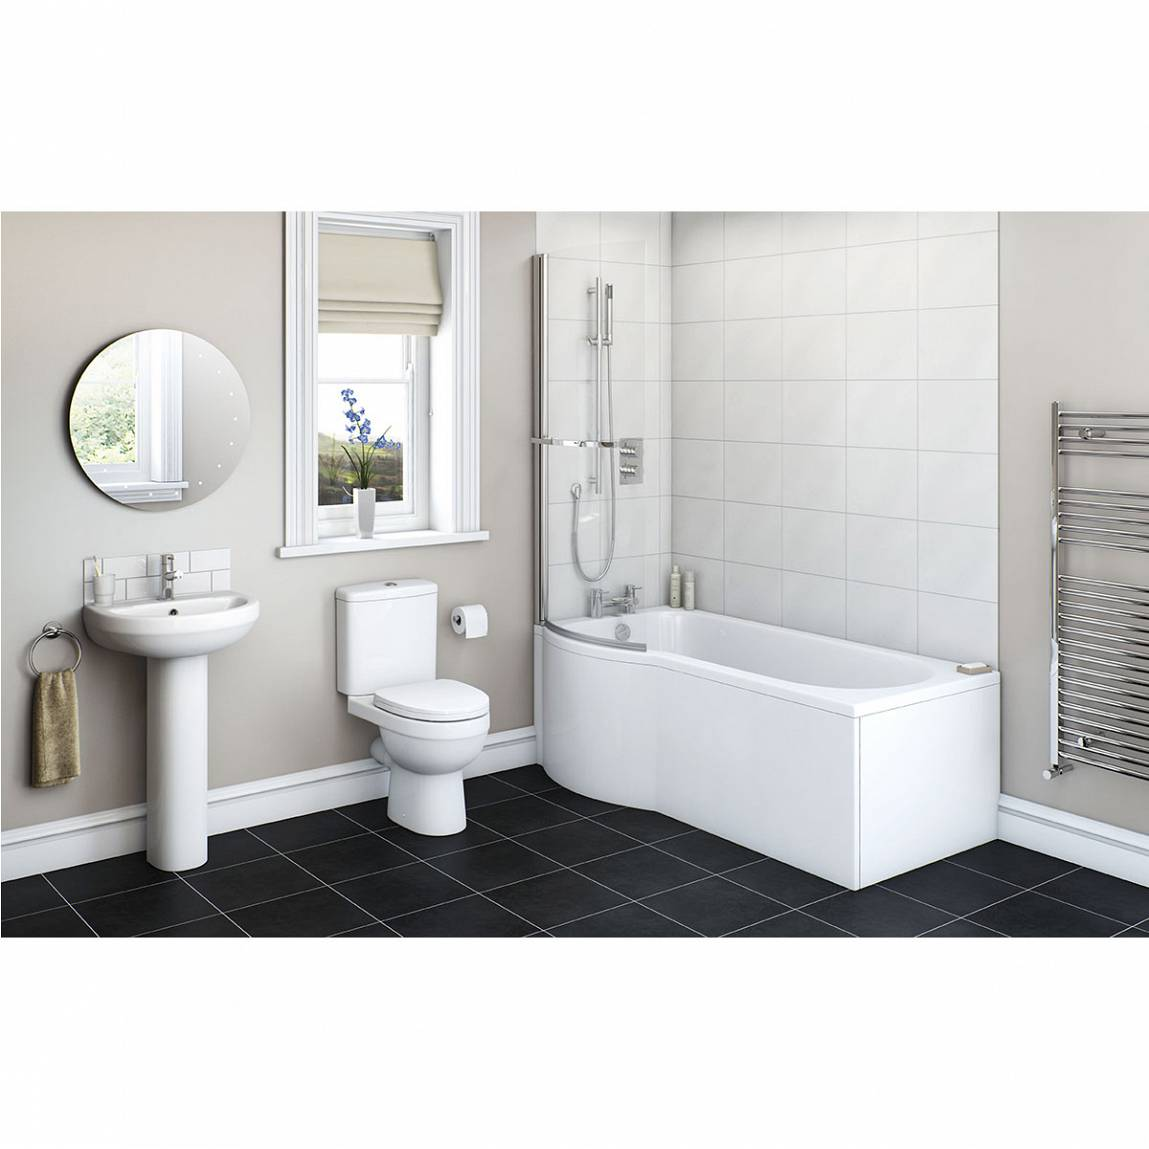 Image of Energy Bathroom Set with Evesham 1500 x 800 Shower Bath Suite LH